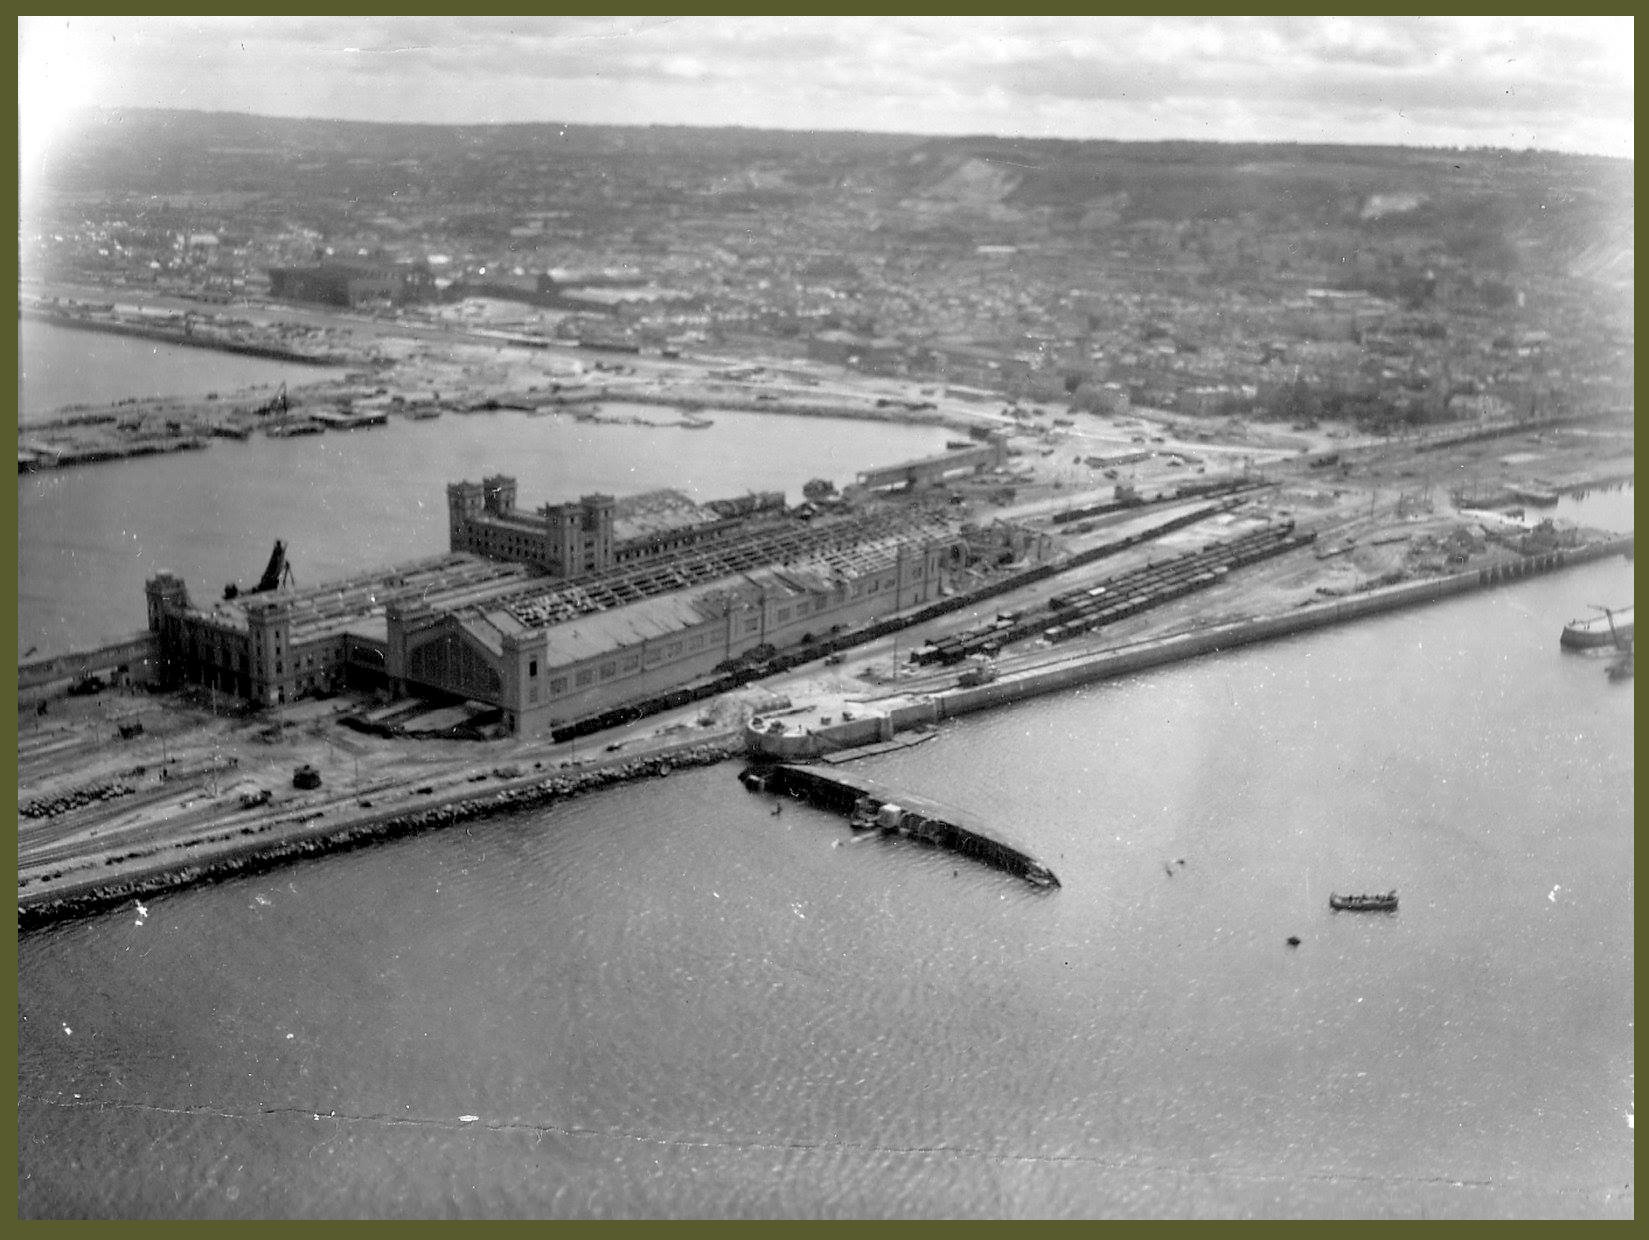 Cherbourg from the sky - ship Le Normand by the Germans copy